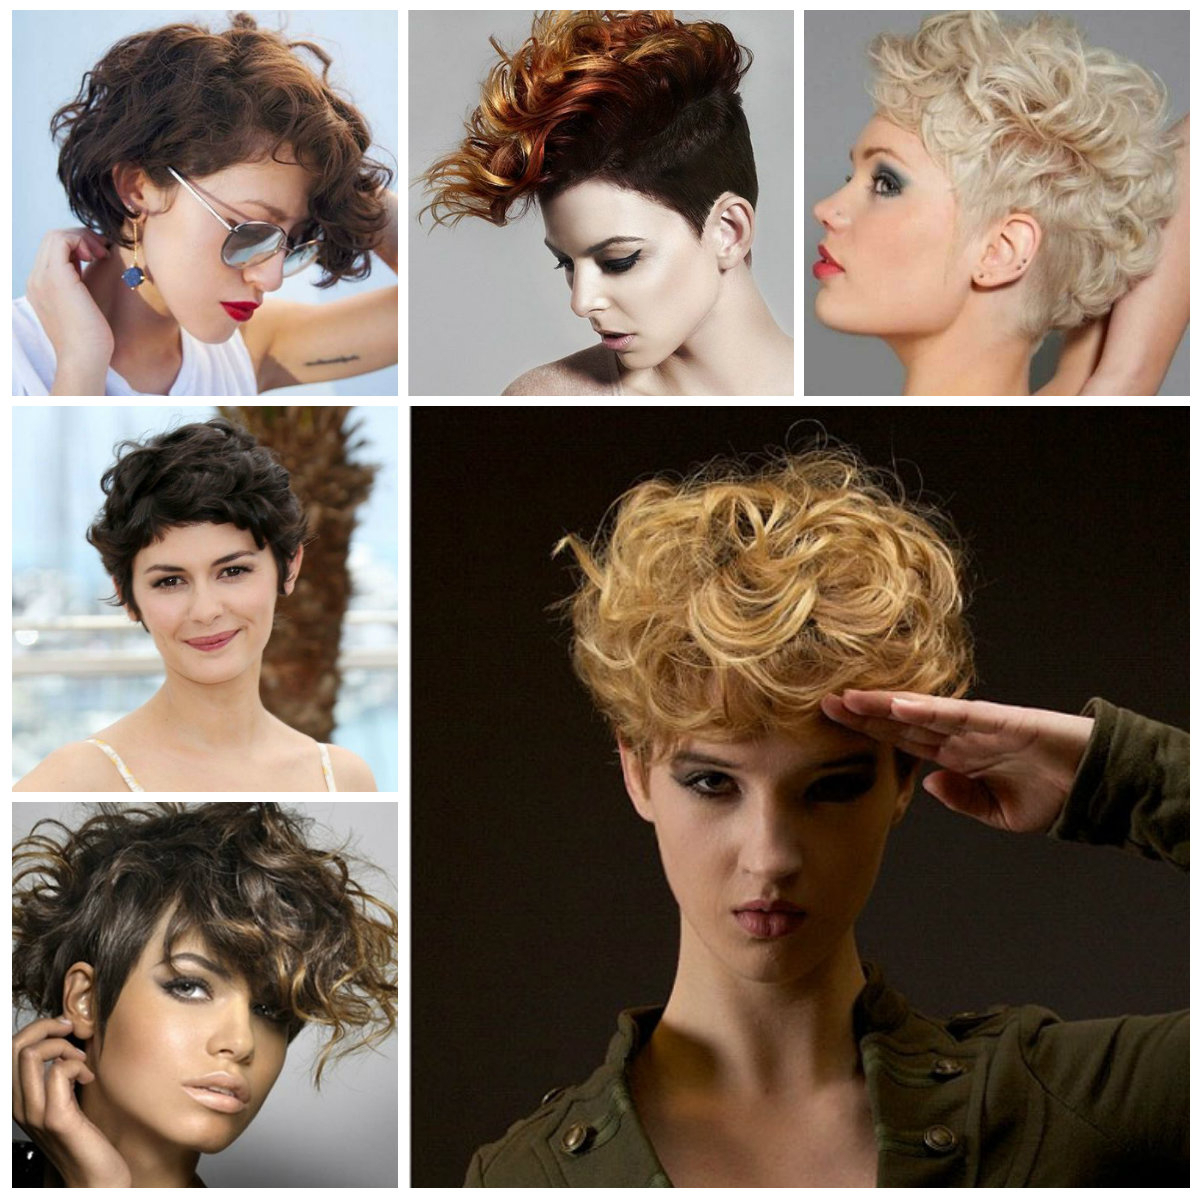 Short Hairstyles For Curly Hair 2017 – Hairstyles Ideas In Curly Golden Brown Pixie Hairstyles (View 14 of 20)